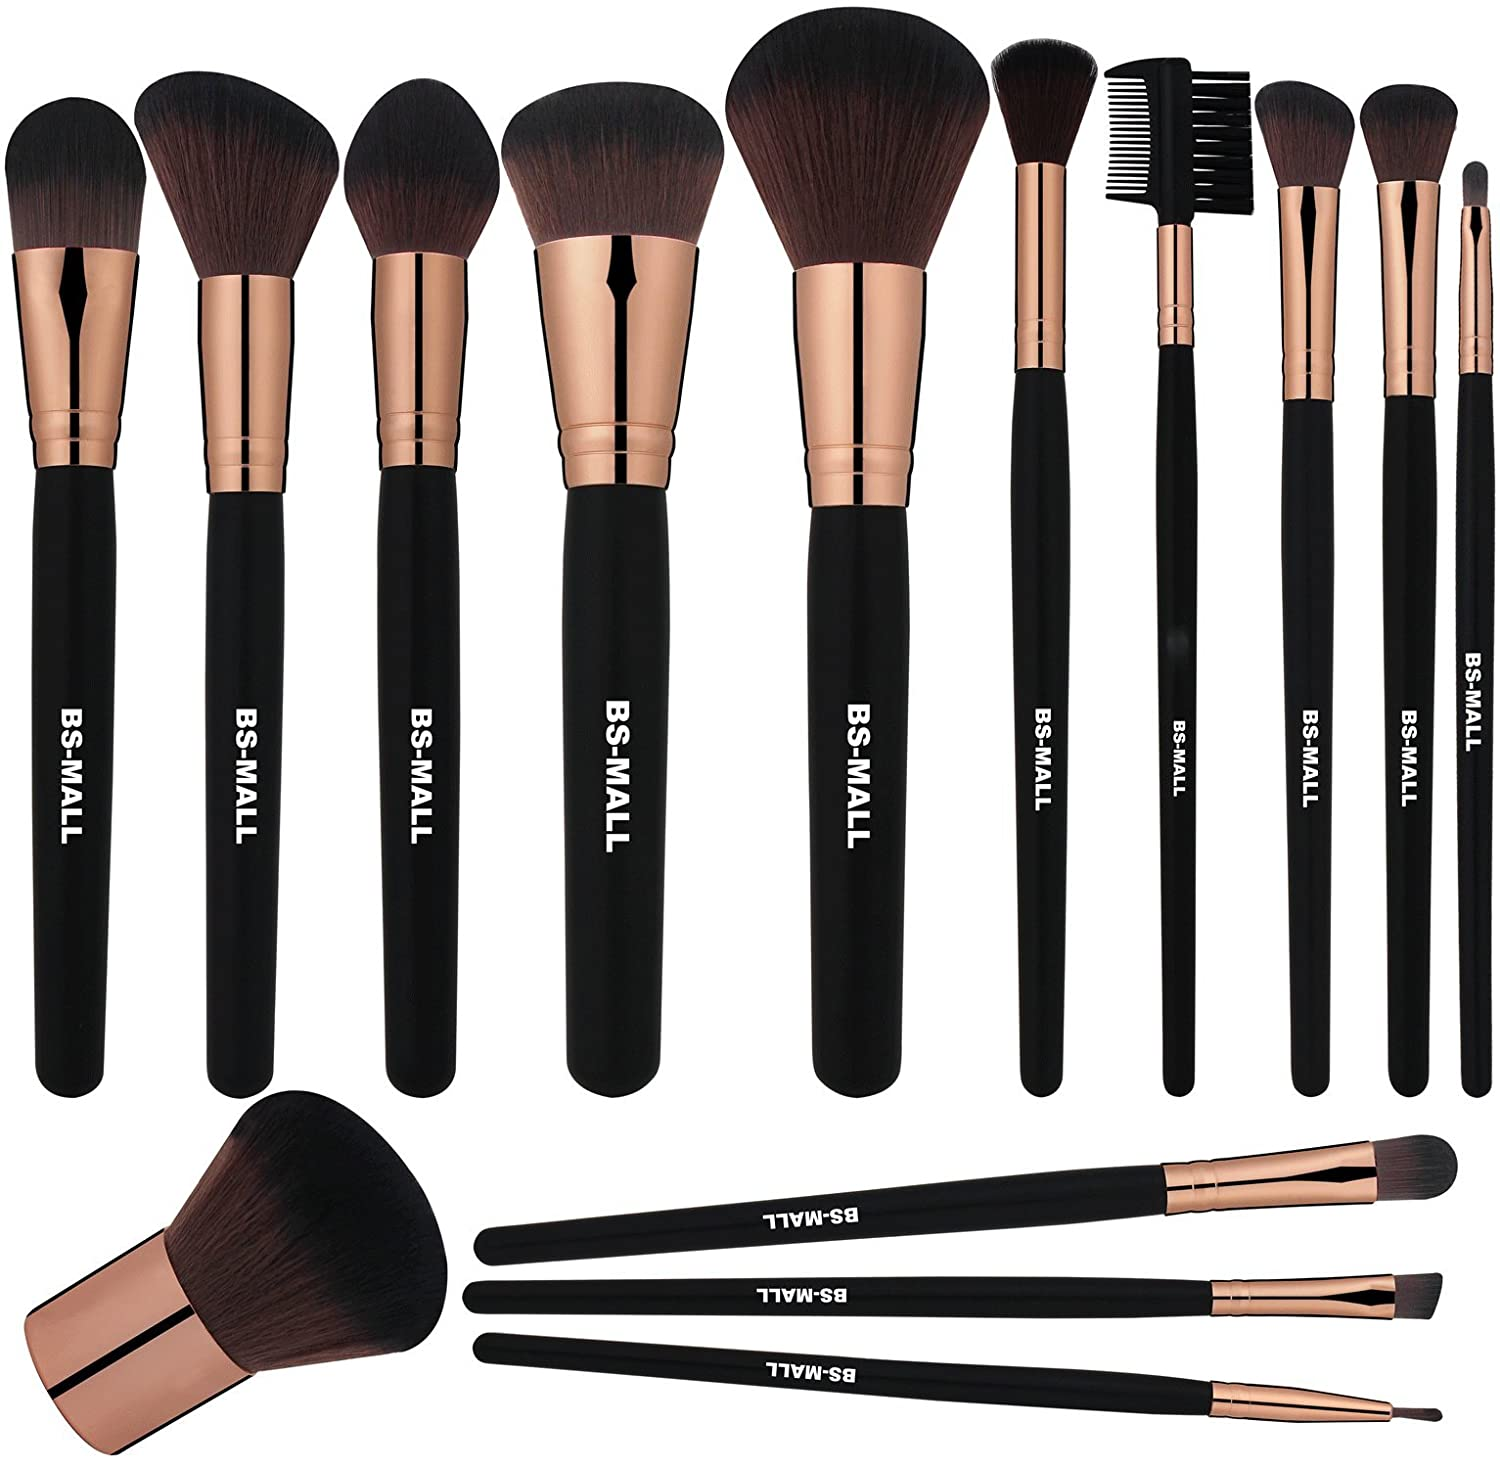 BS-MALL Premium Synthetic Kabuki Makeup brushes 2018 New Makeup Brush Set(14 Pcs,Rose Black)